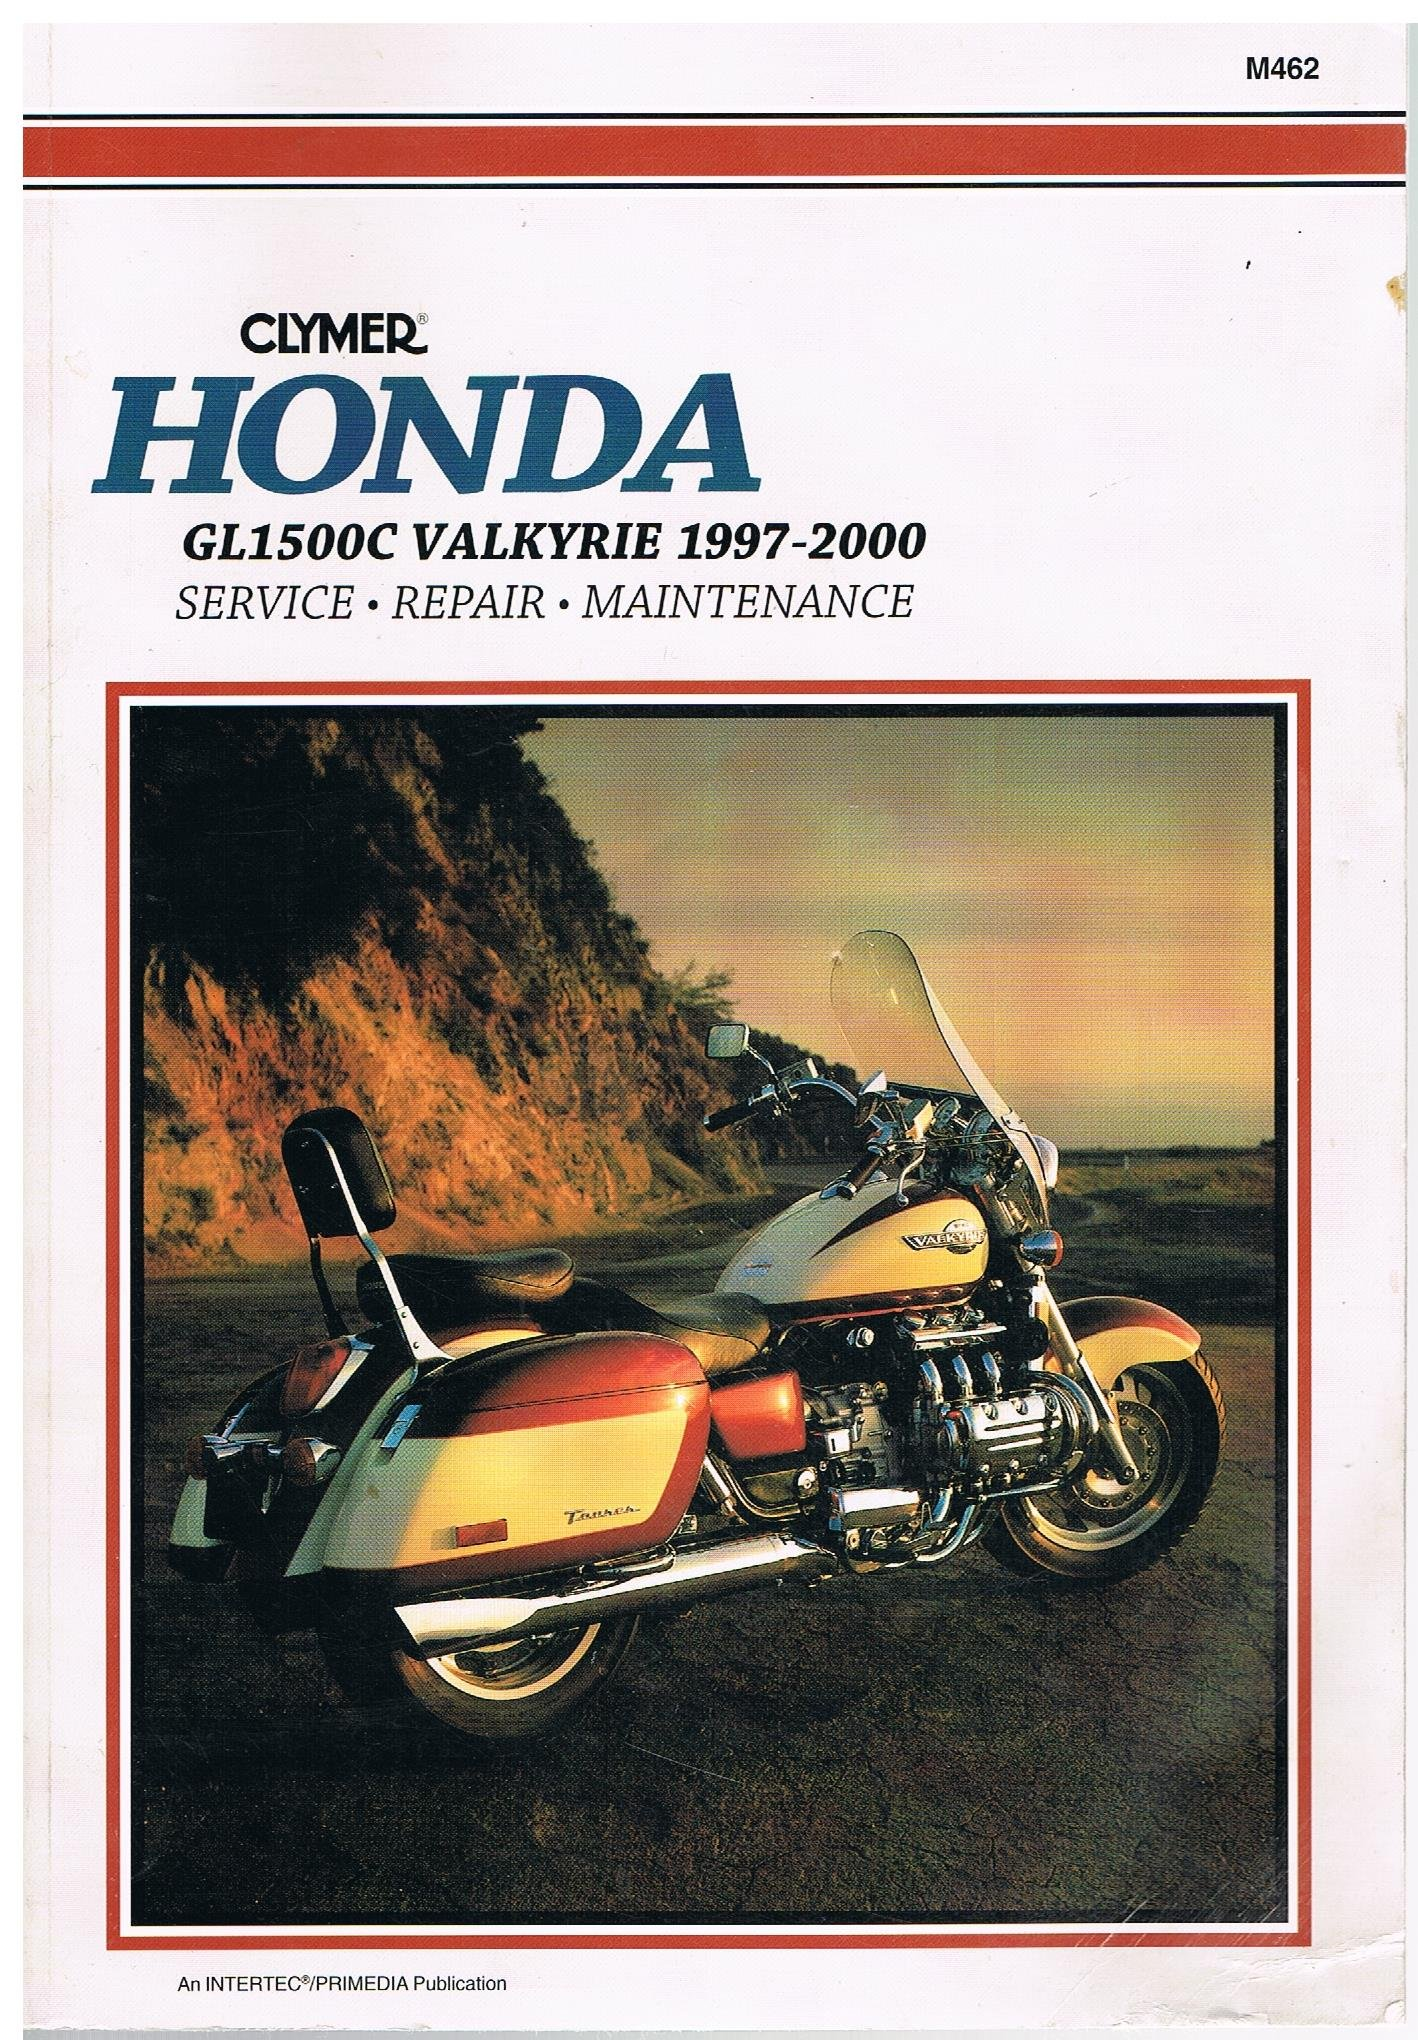 Honda Gl1500c Valkyrie, 1997-2000: Service, Repair, Maintenance (Clymer  Motorcycle Repair Series): Clymer Publishing: 9780892877522: Amazon.com:  Books